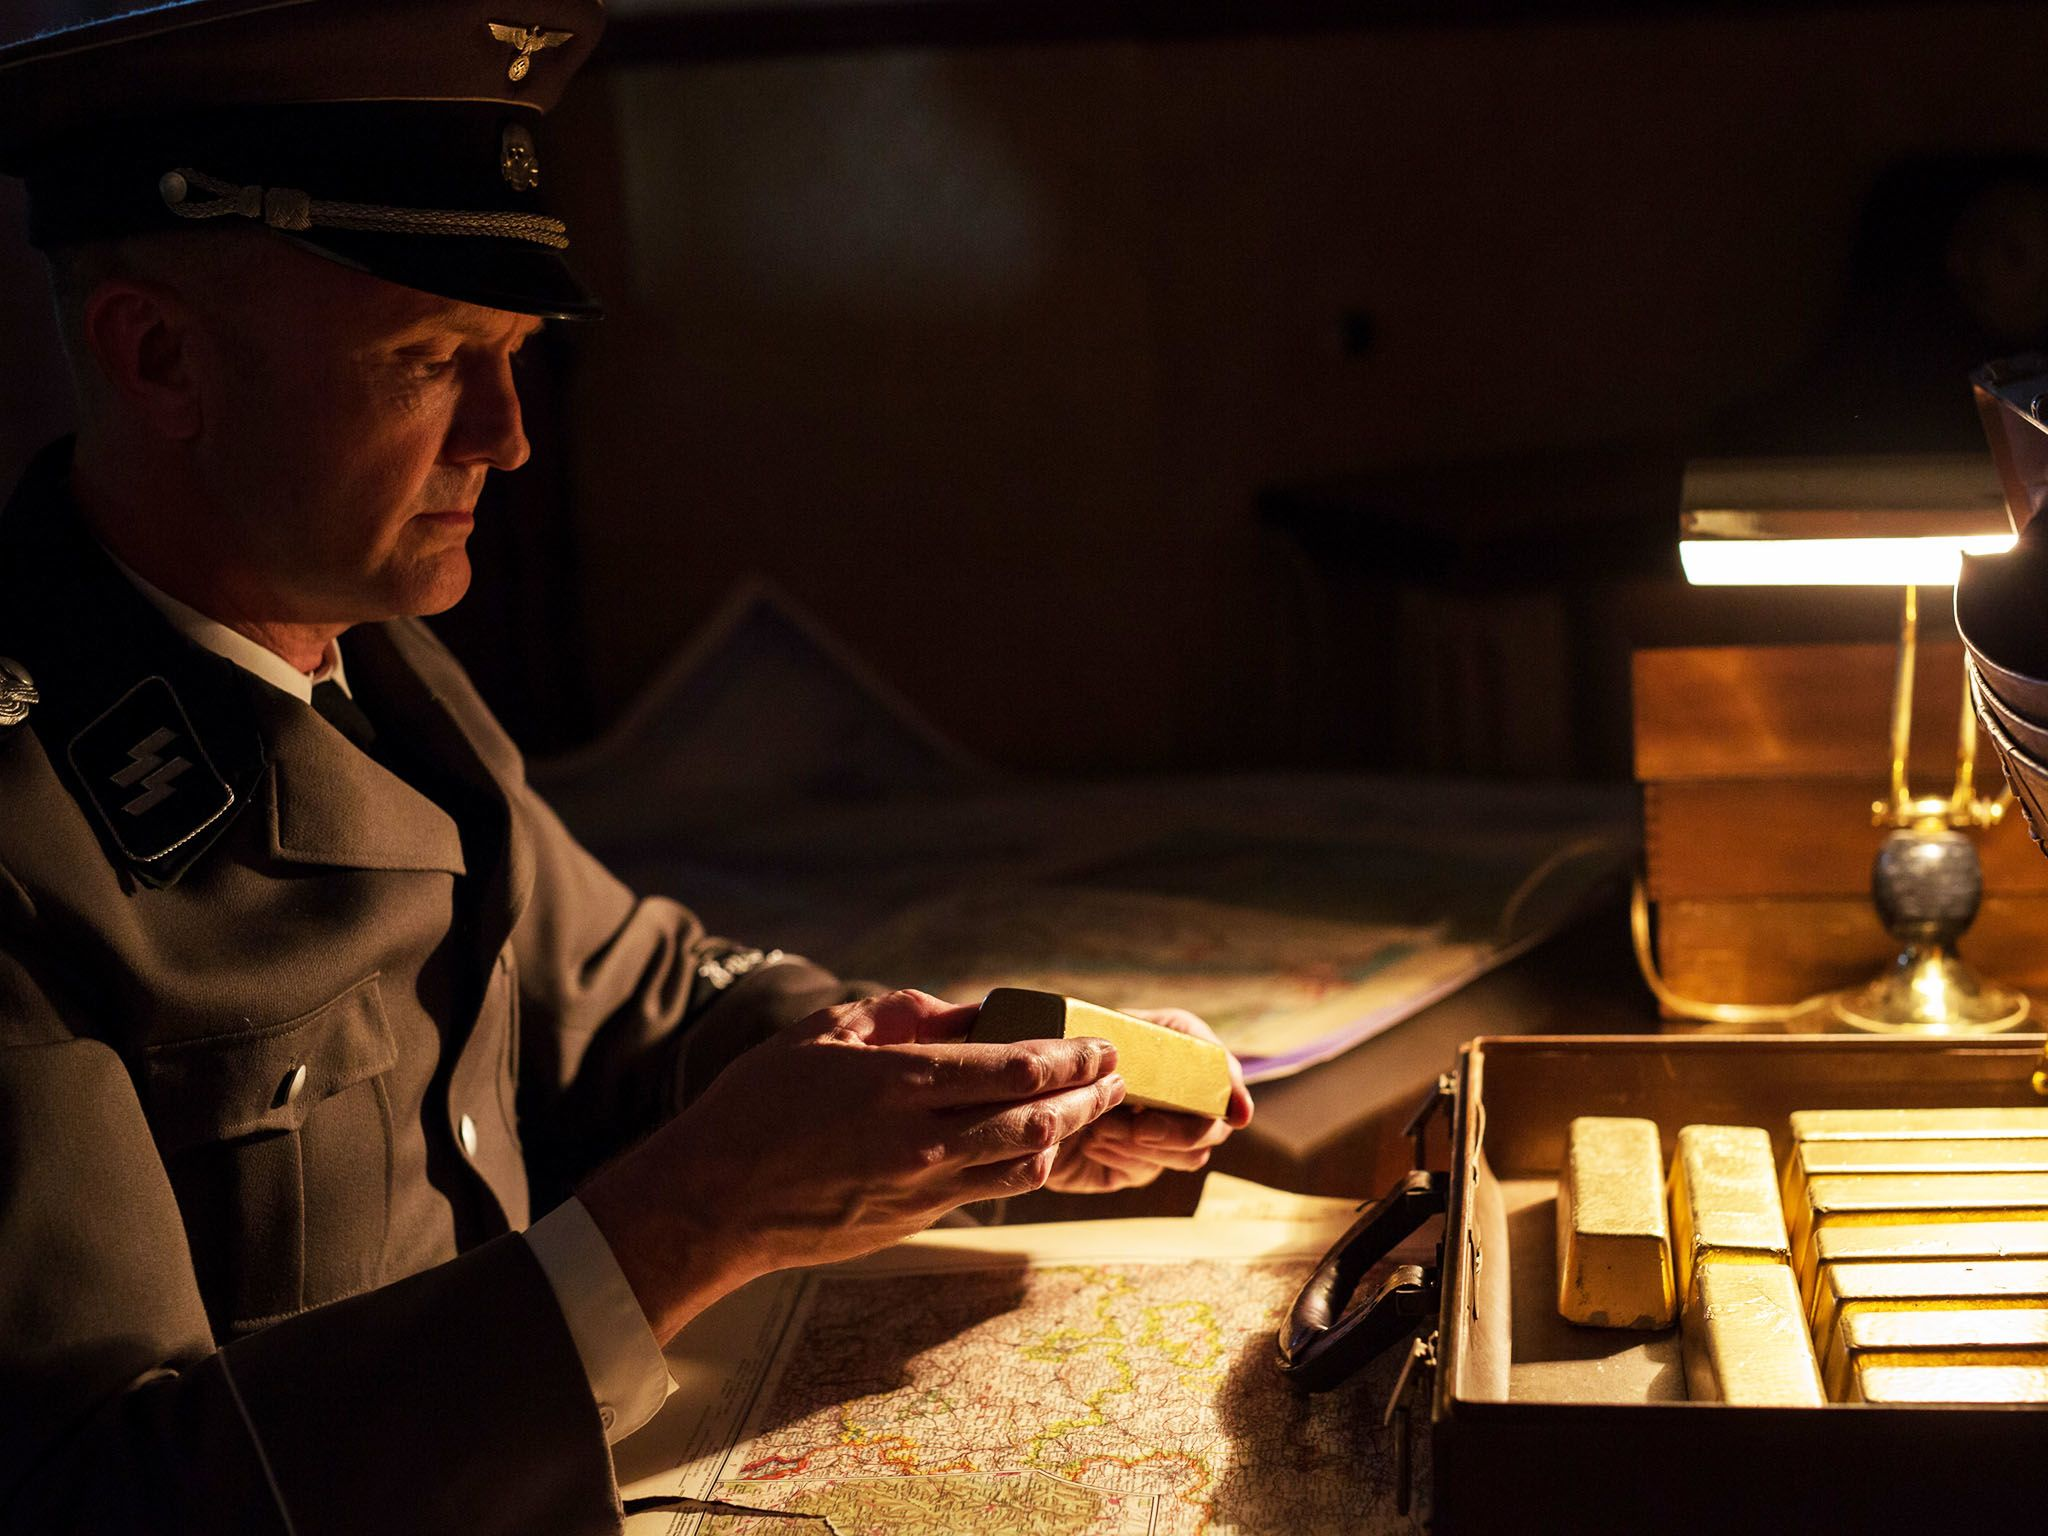 Re-enactment: Eichmann (played by M.E. Lewis)looks at the gold bars given to him by the Munk... [Photo of the day - September 2015]